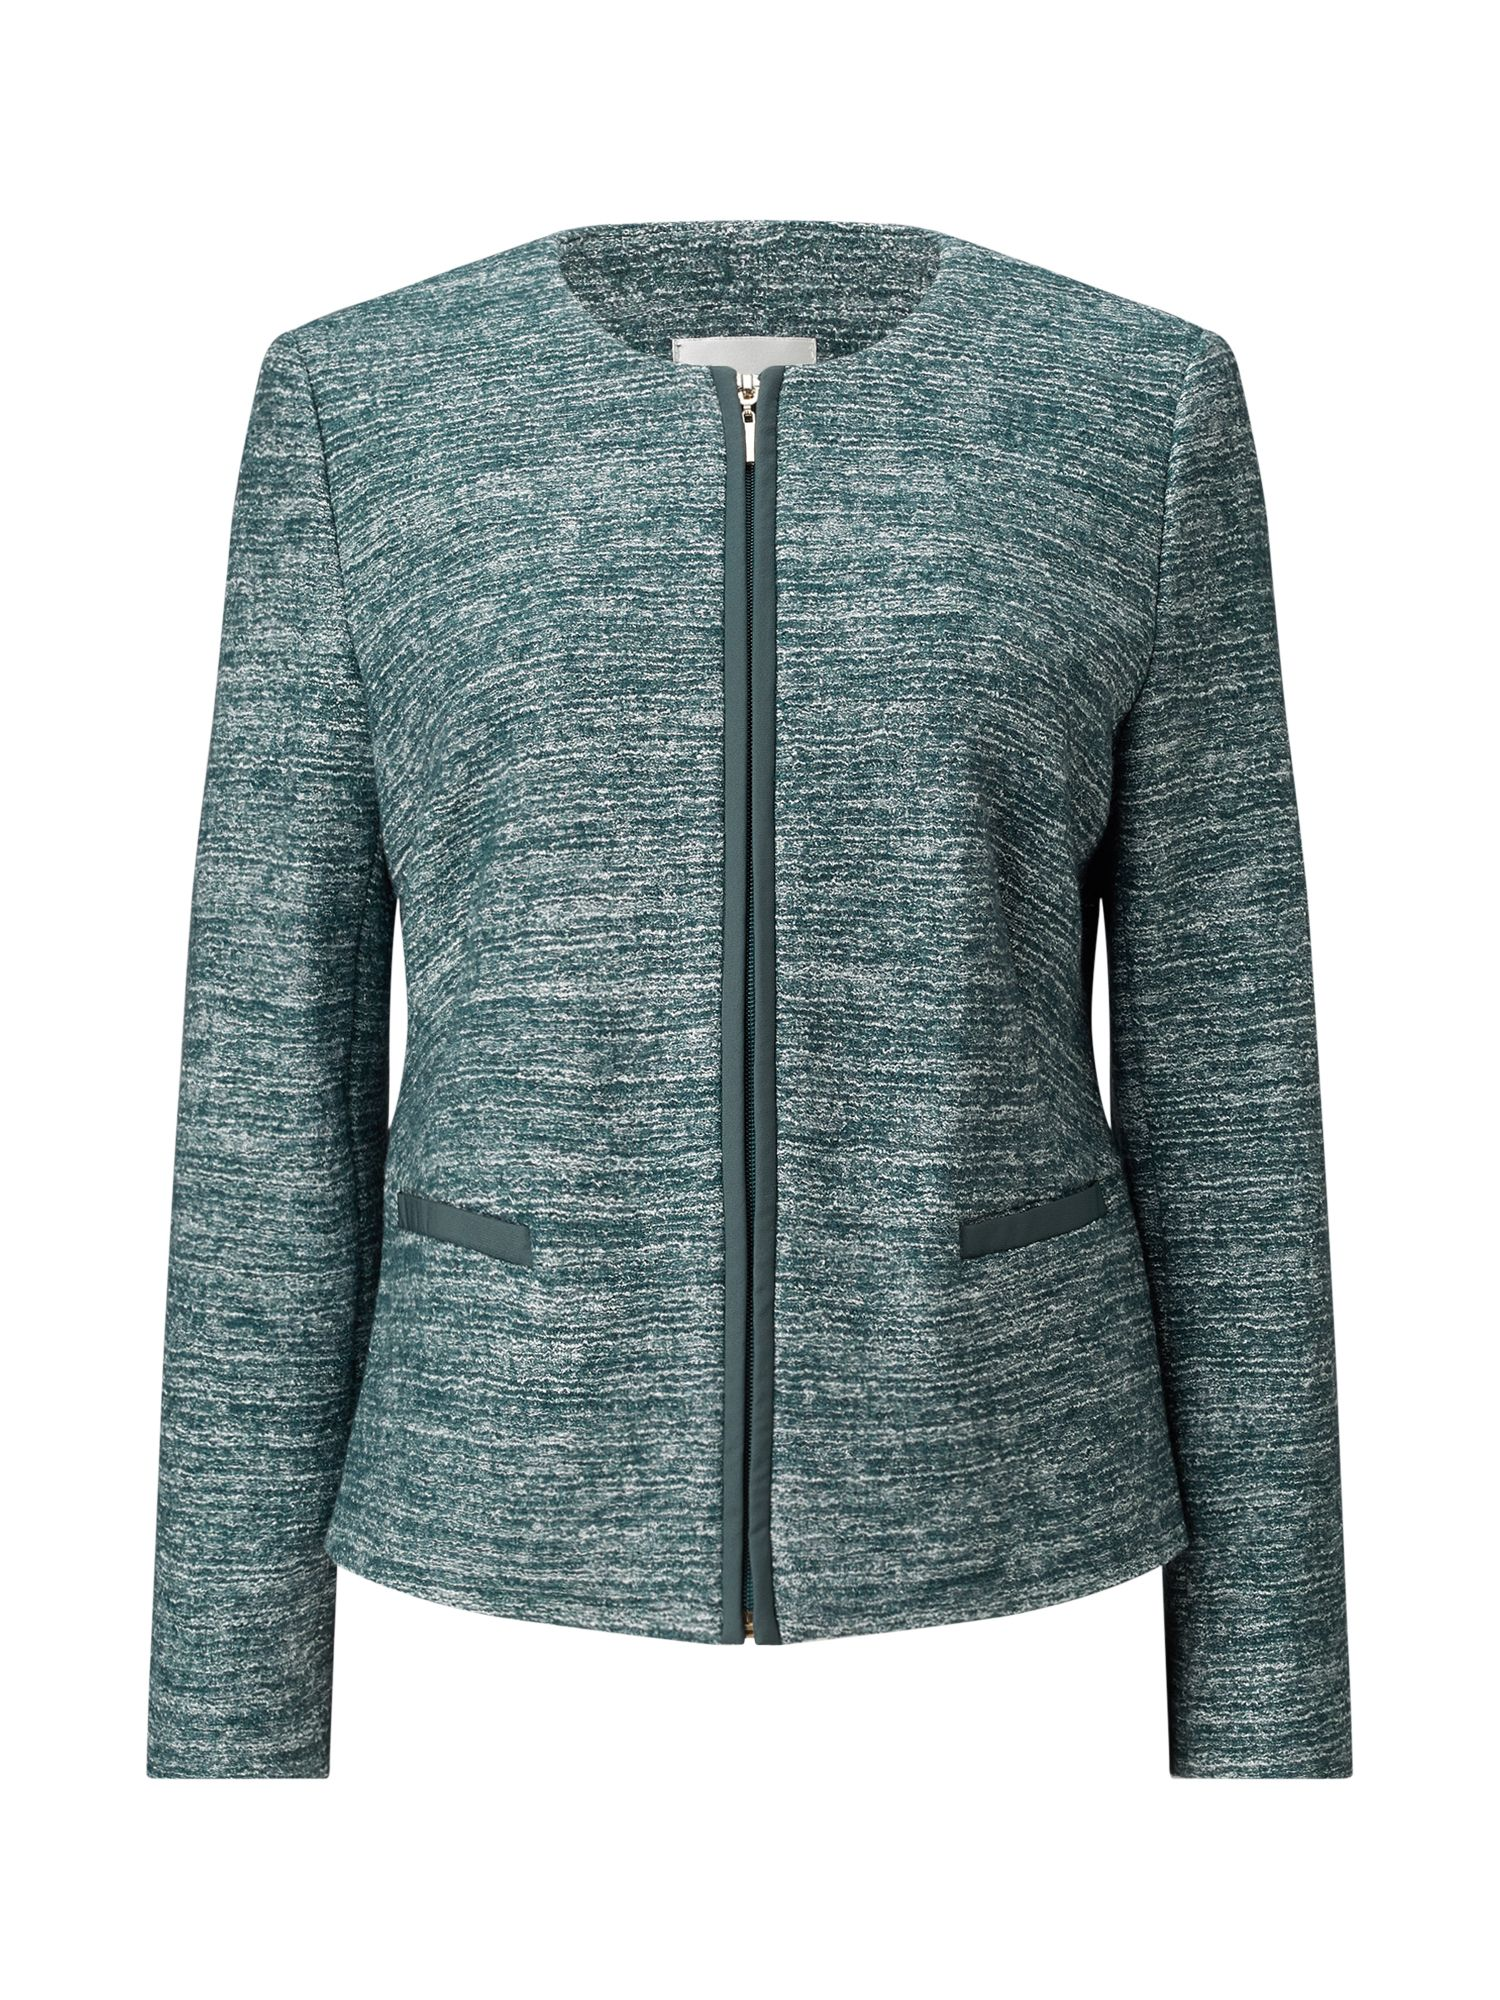 Eastex Eastex Two Tone Knitted Jacket, Multi-Coloured